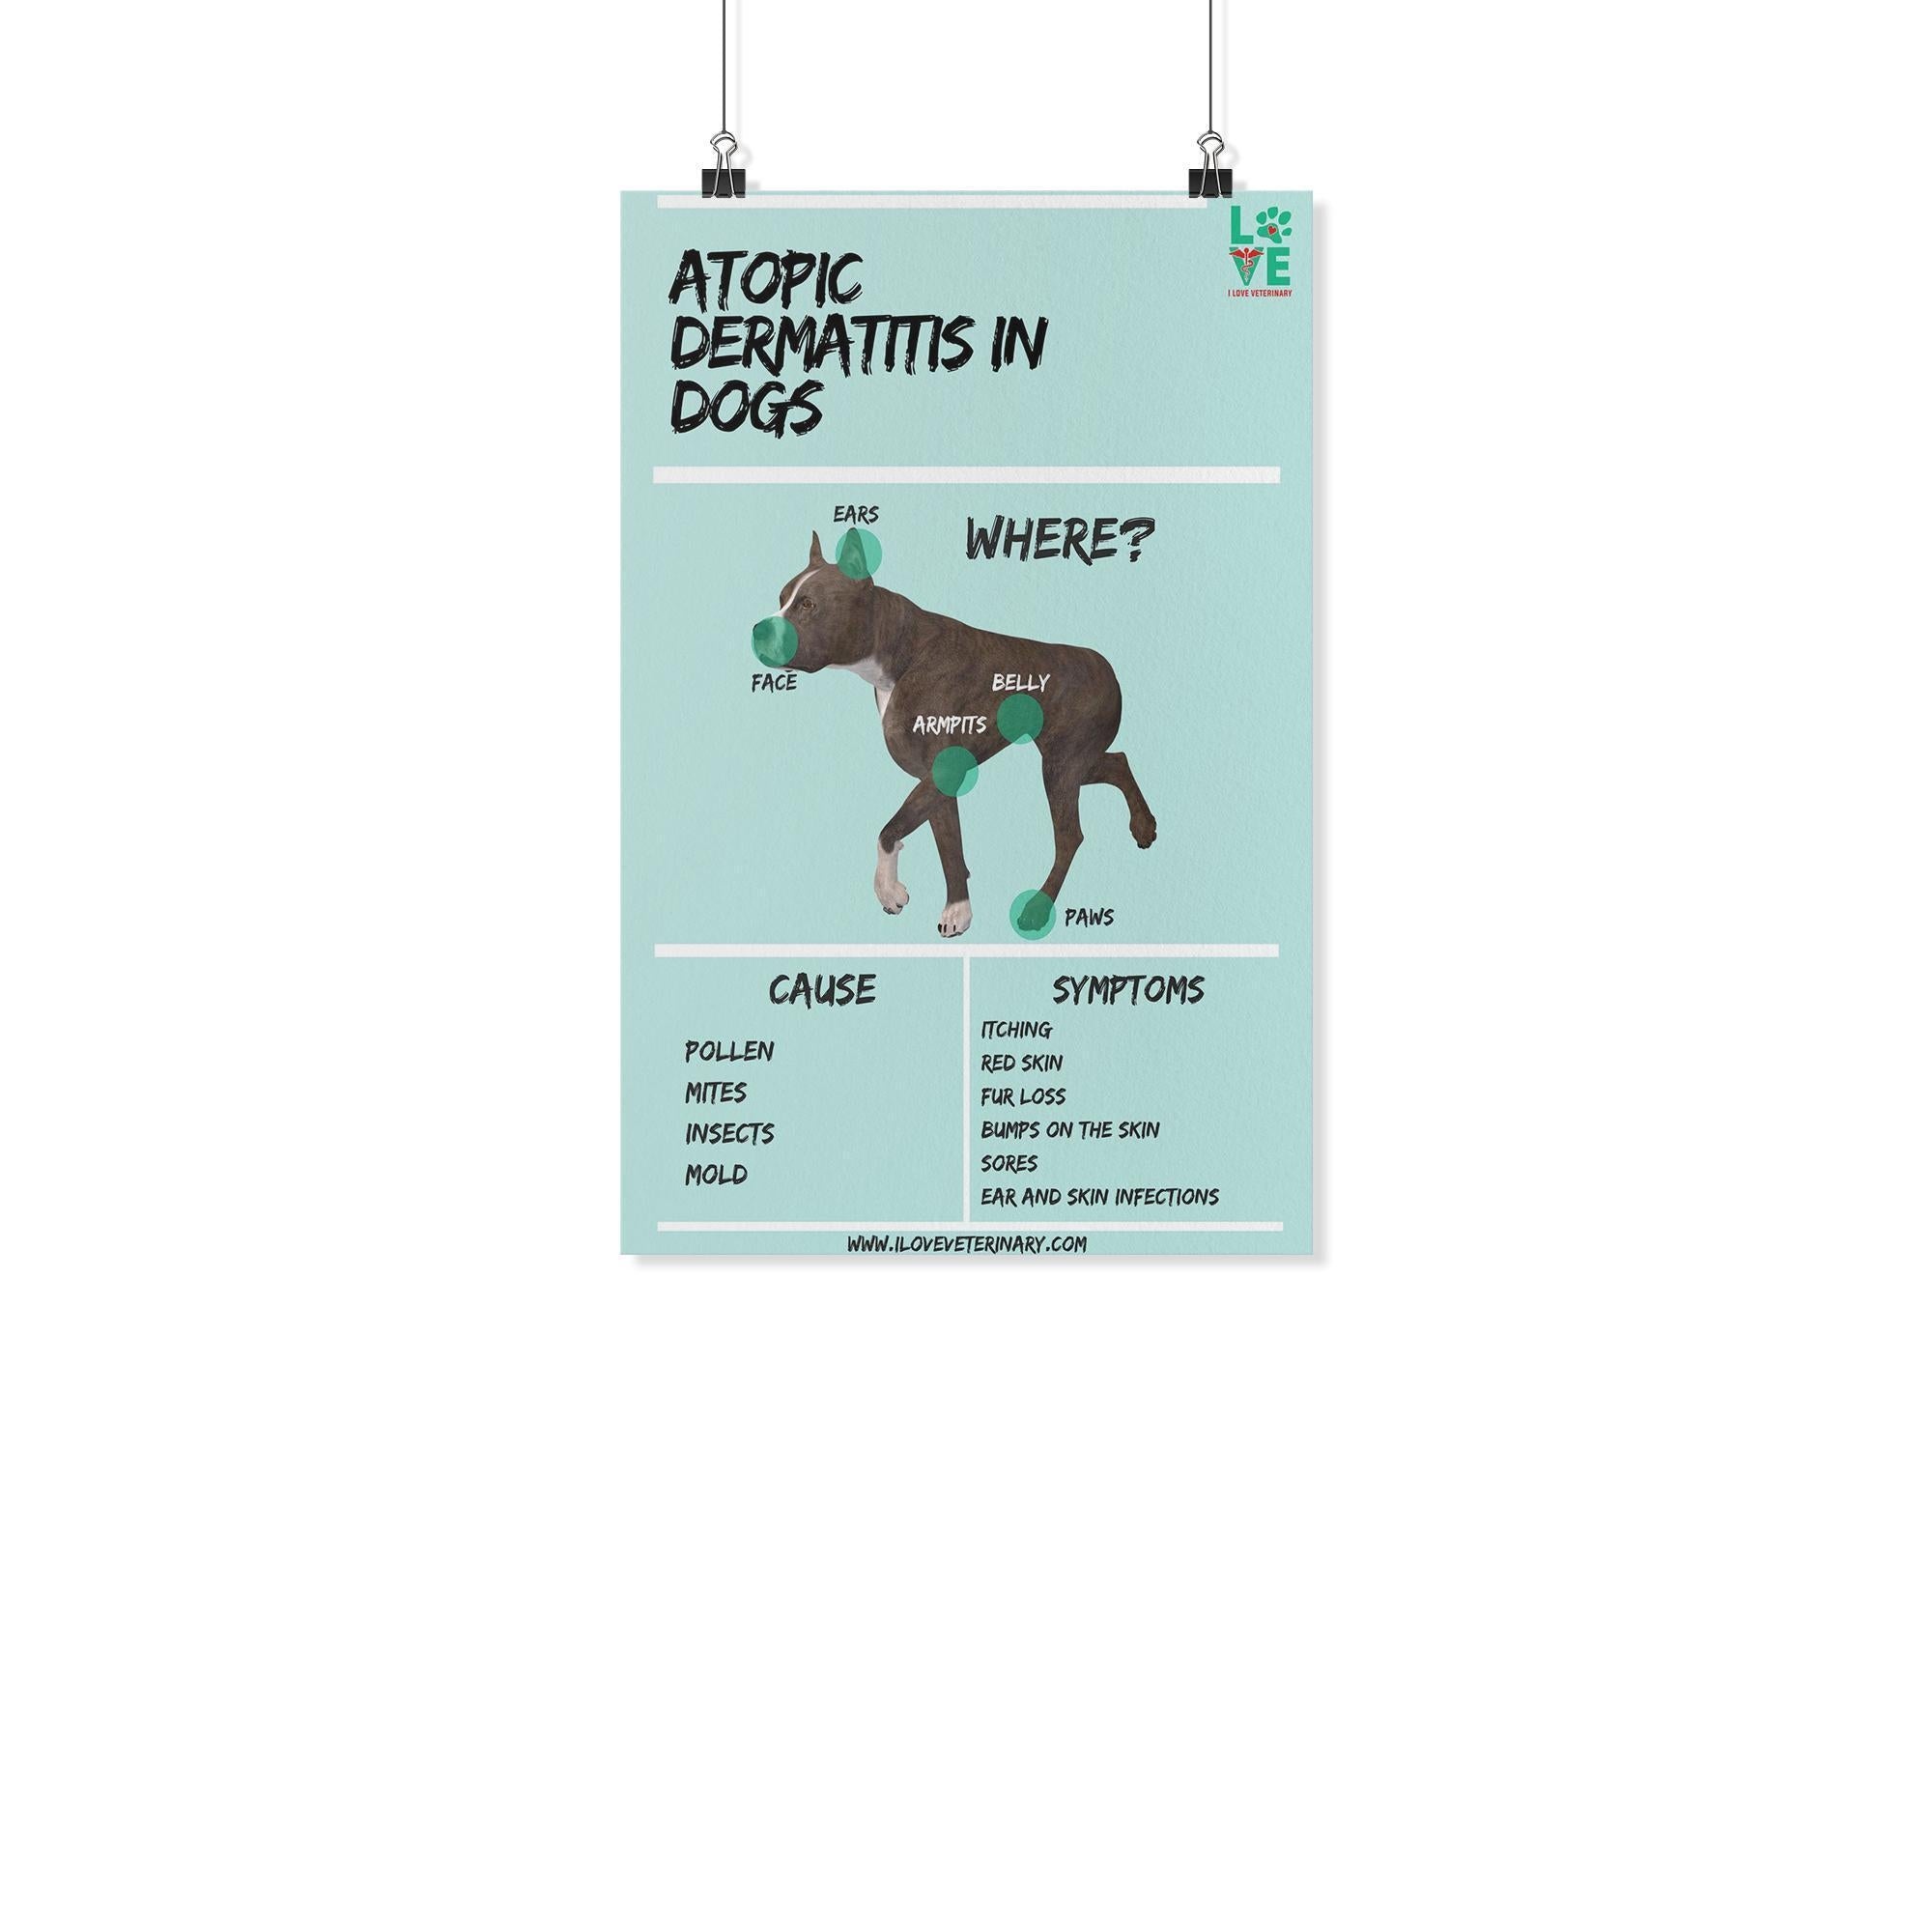 Atopic Dermatitis in Dogs Poster